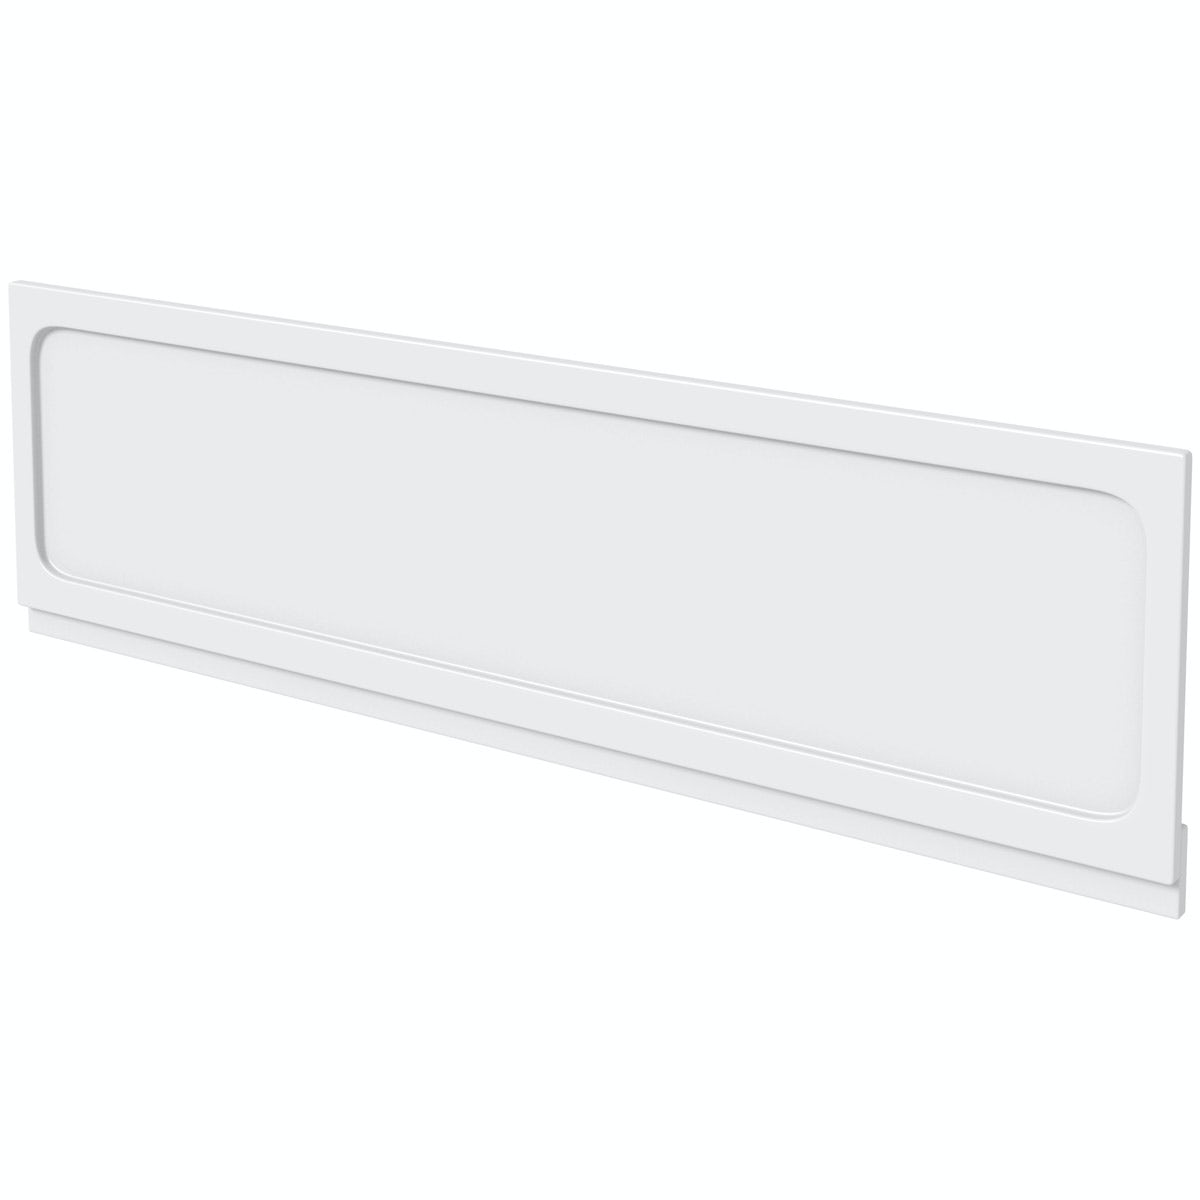 The Bath Co. Traditional acrylic bath front panel 1700mm